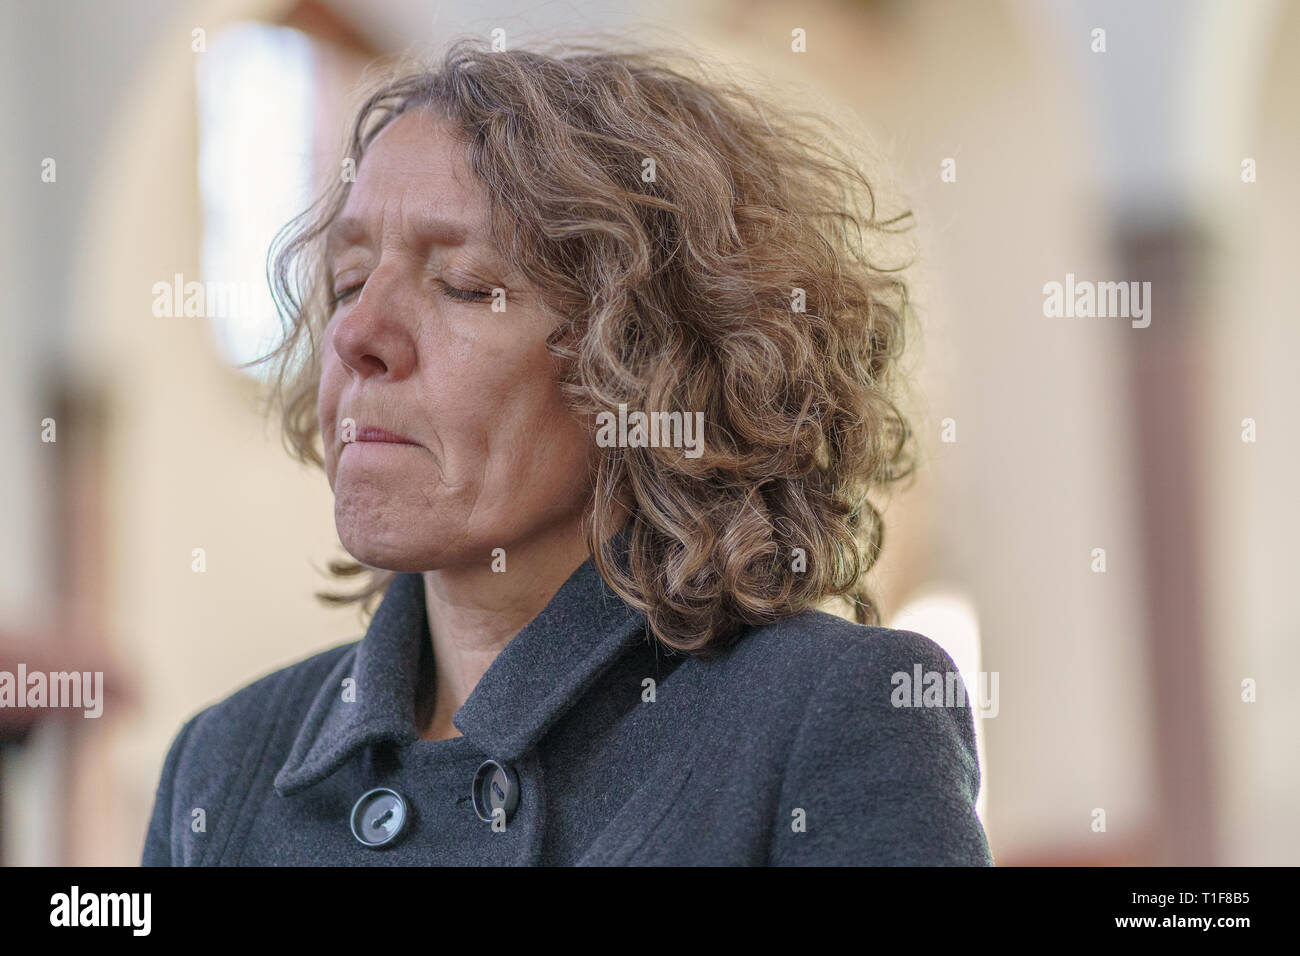 Religious devout woman praying alone in a church with her eyes closed in concentration in a close up portrait - Stock Image